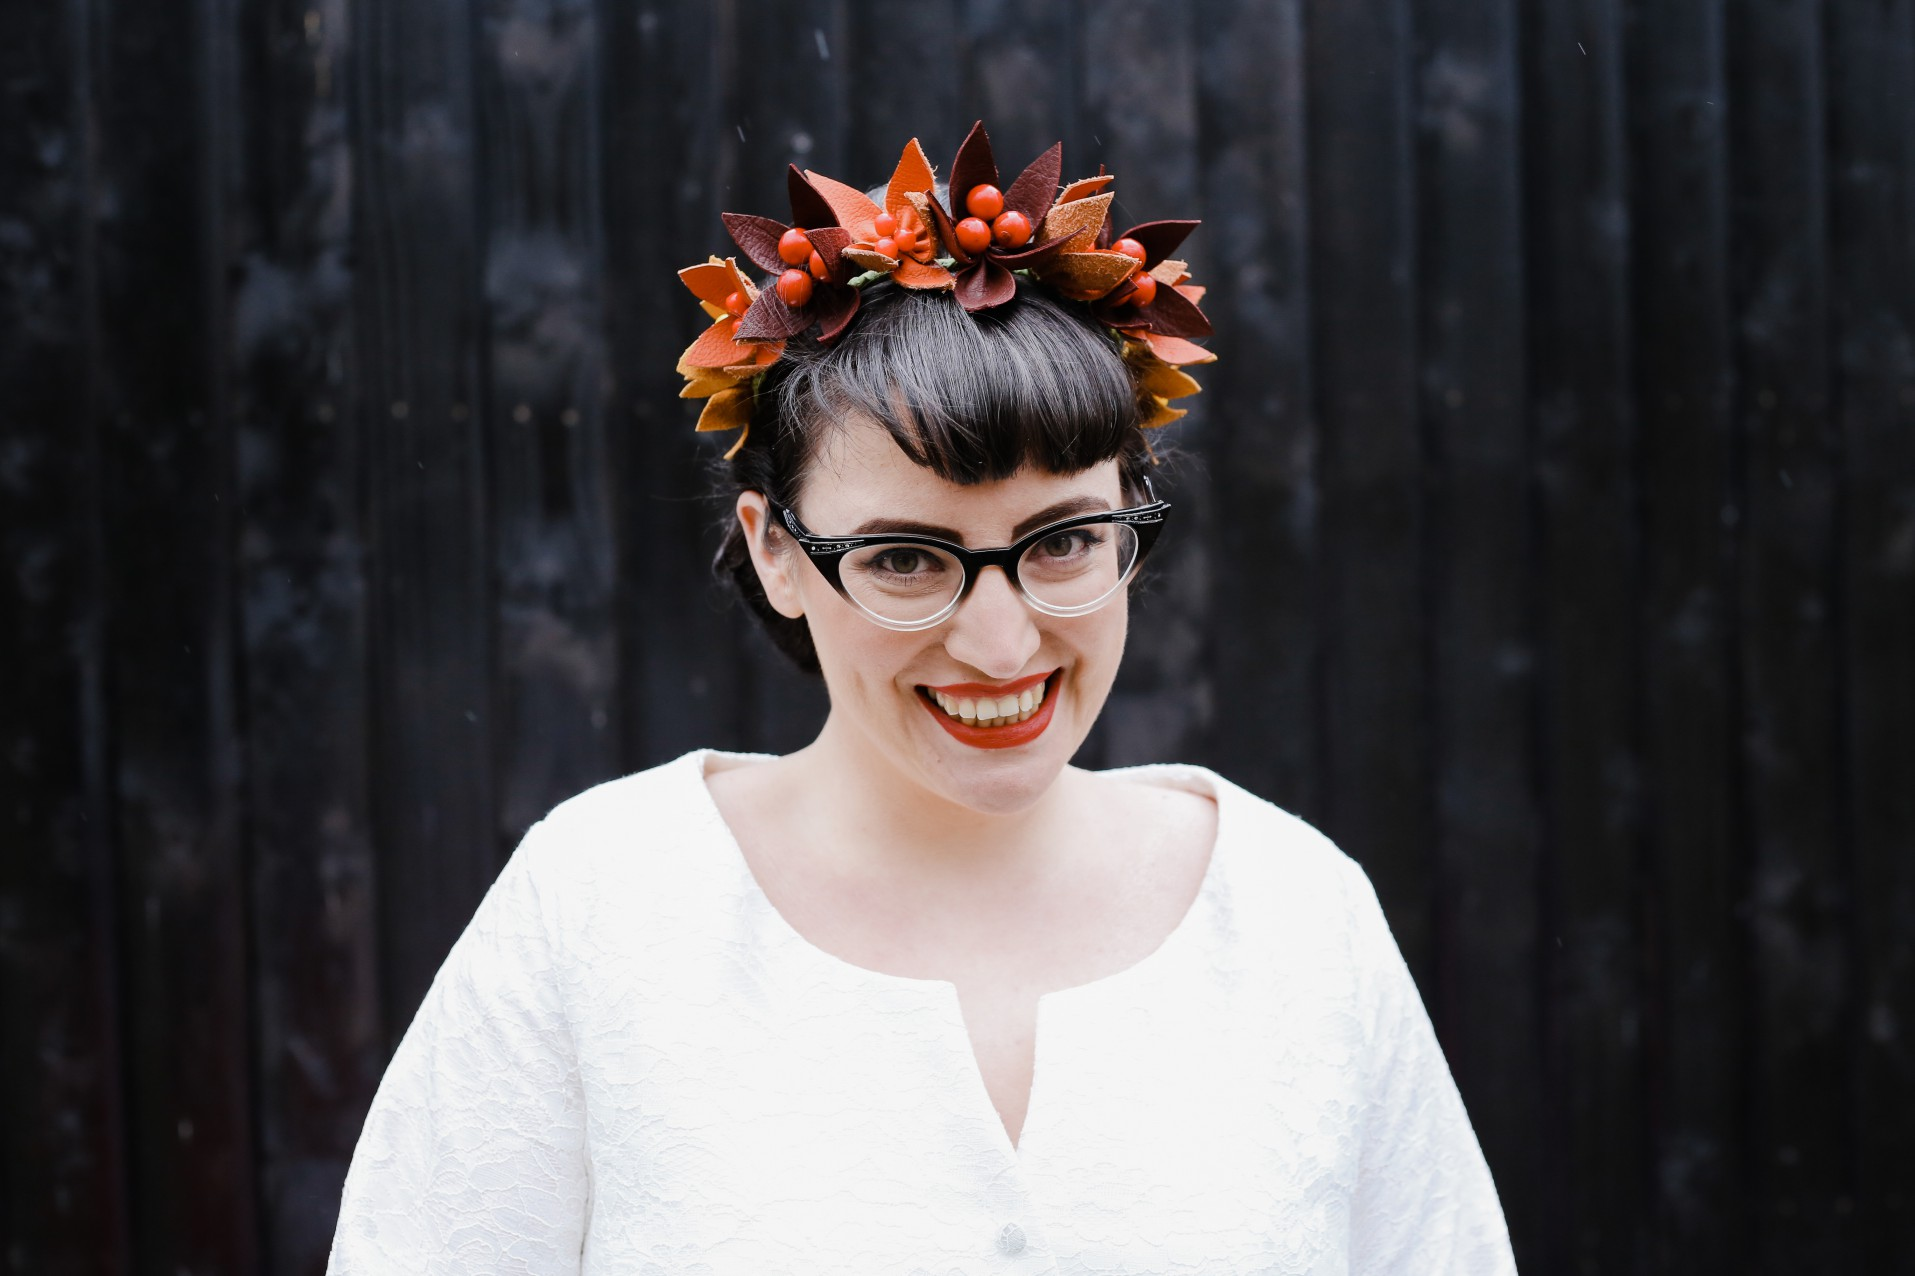 Becky Payne Photographer - Rainbow Unicorn Styled Wedding Shoot - flower crown